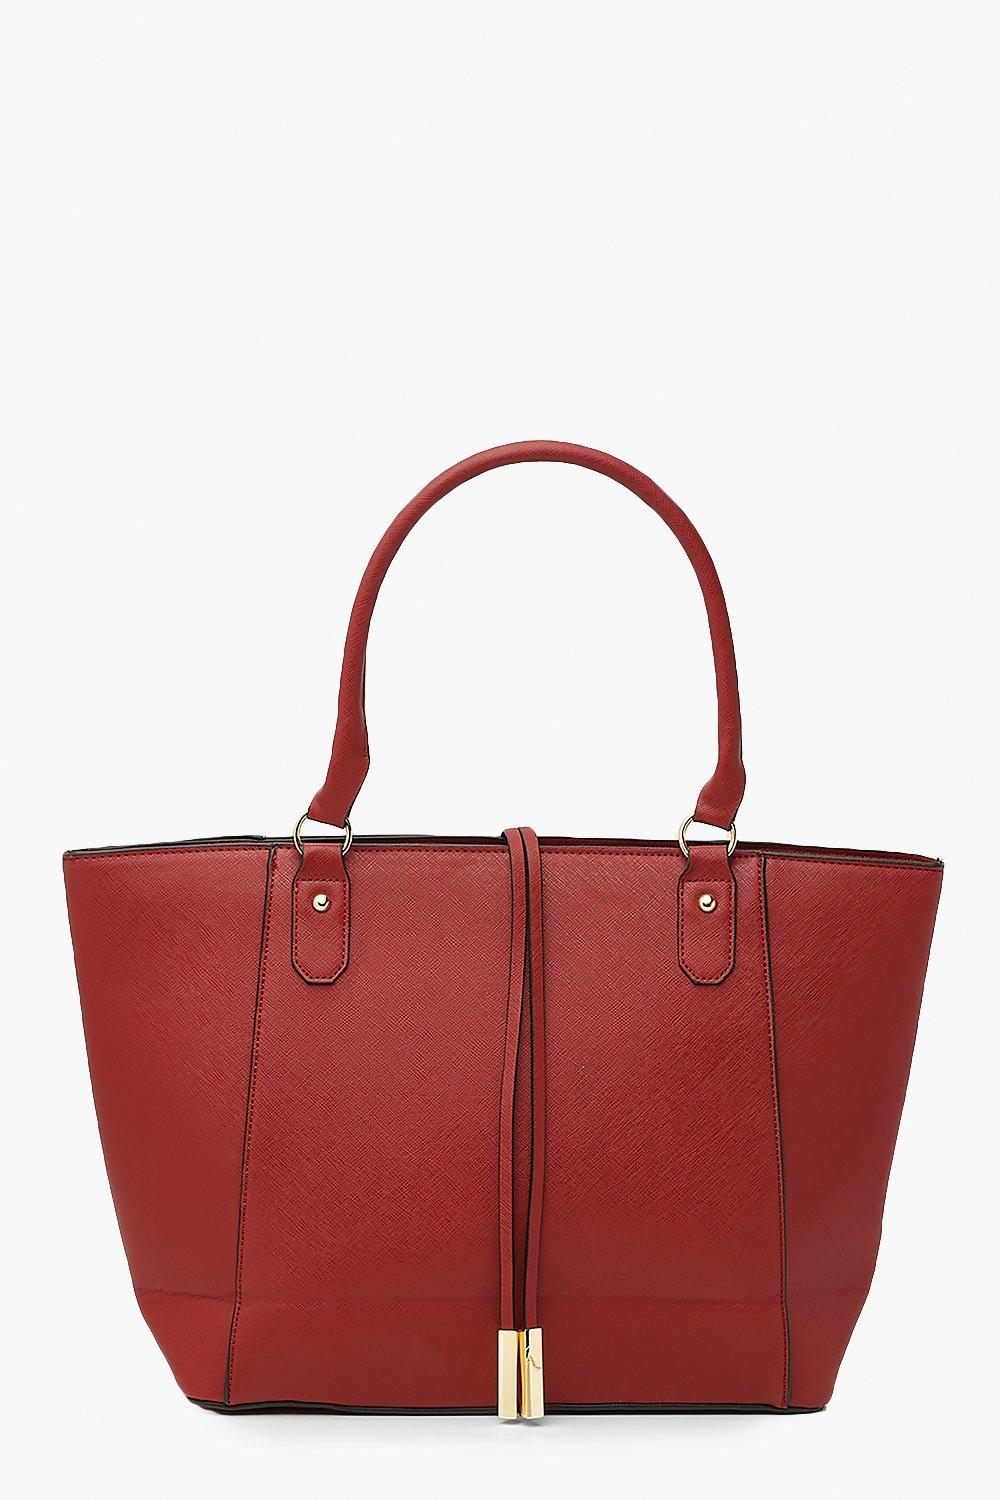 womens structured cross hatch tote bag - one size